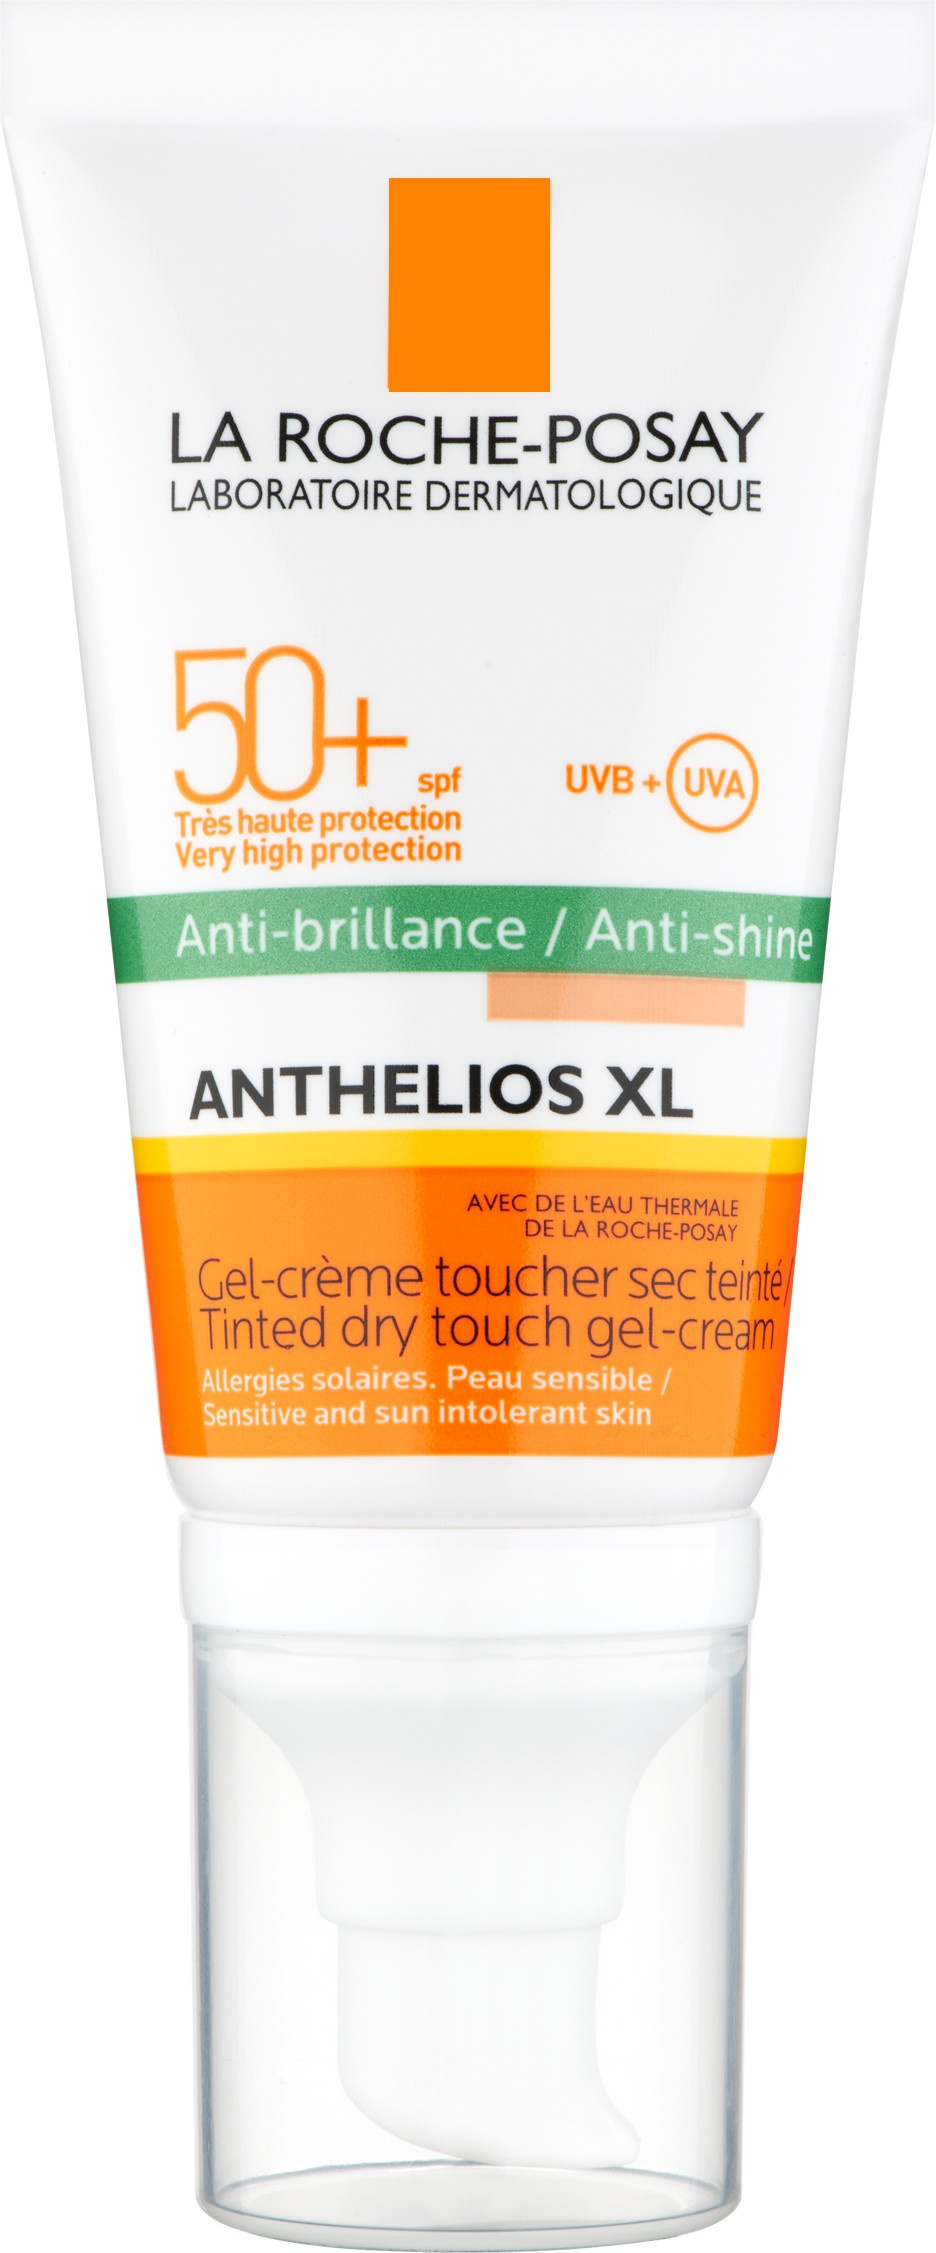 La Roche-Posay Anthelios Xl Tinted Dry Touch Gel-Cream Anti-Shine Spf 50+